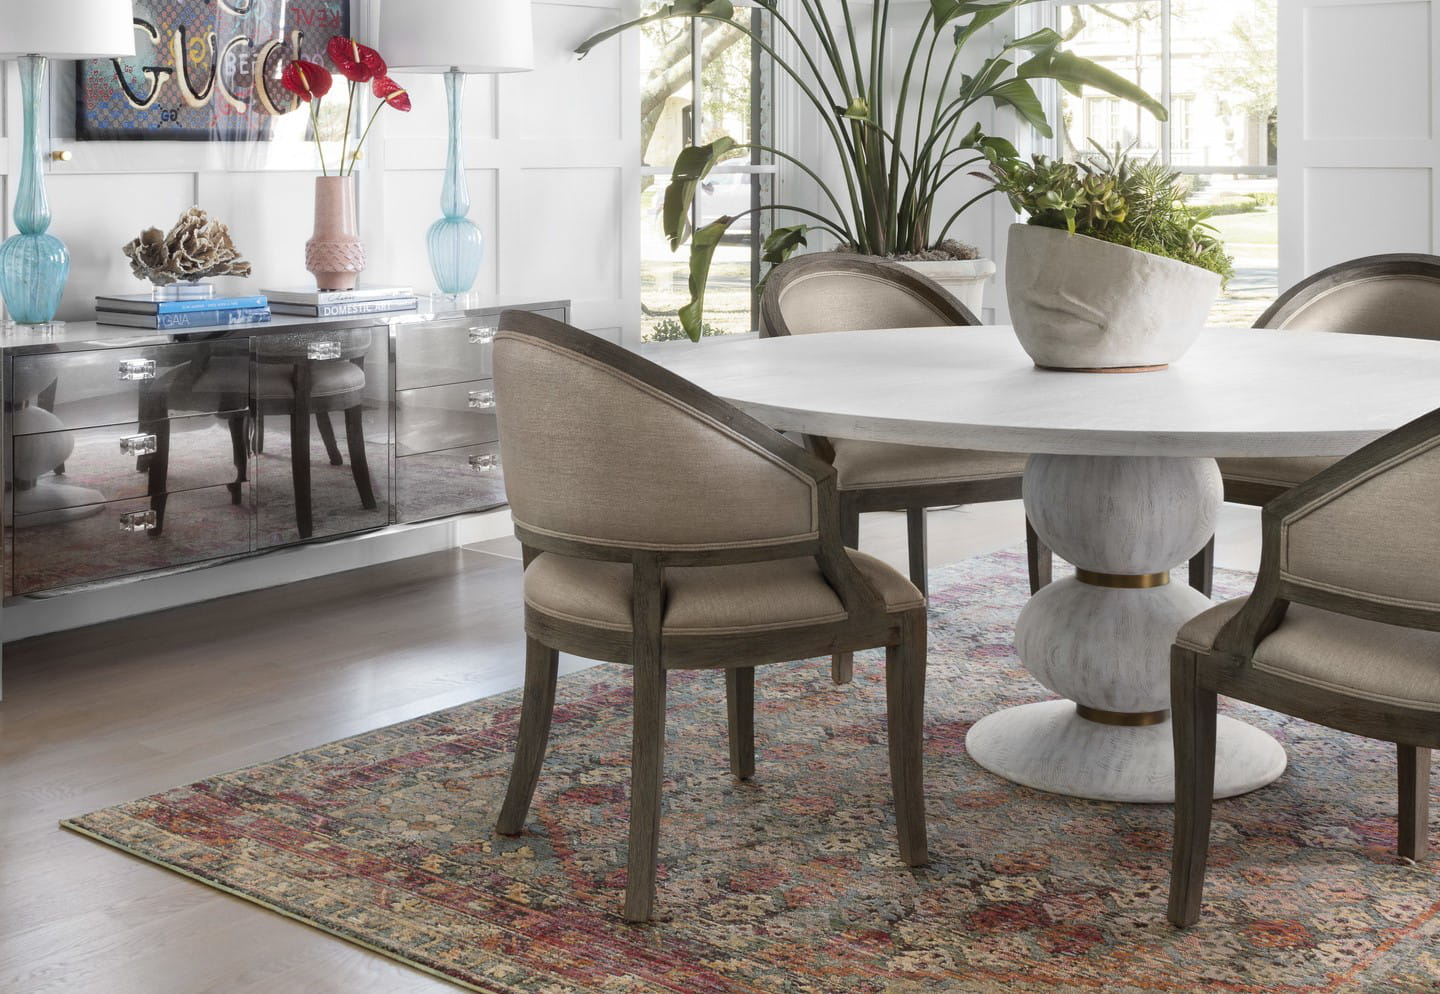 standard rug size for dining room table